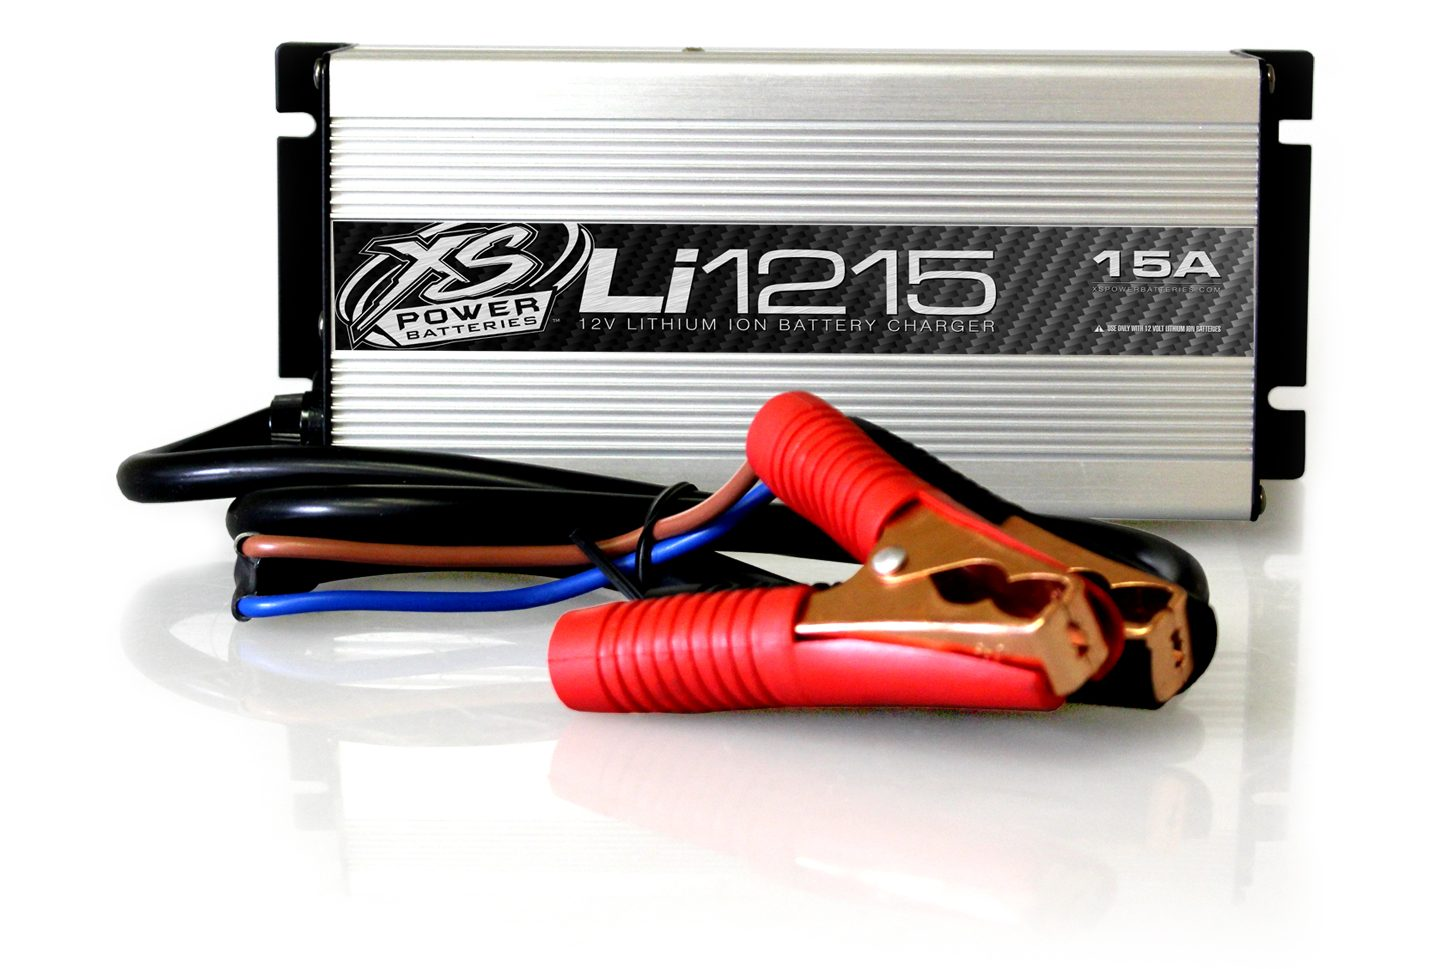 XS Power 15A 12V Lithium Battery Charger